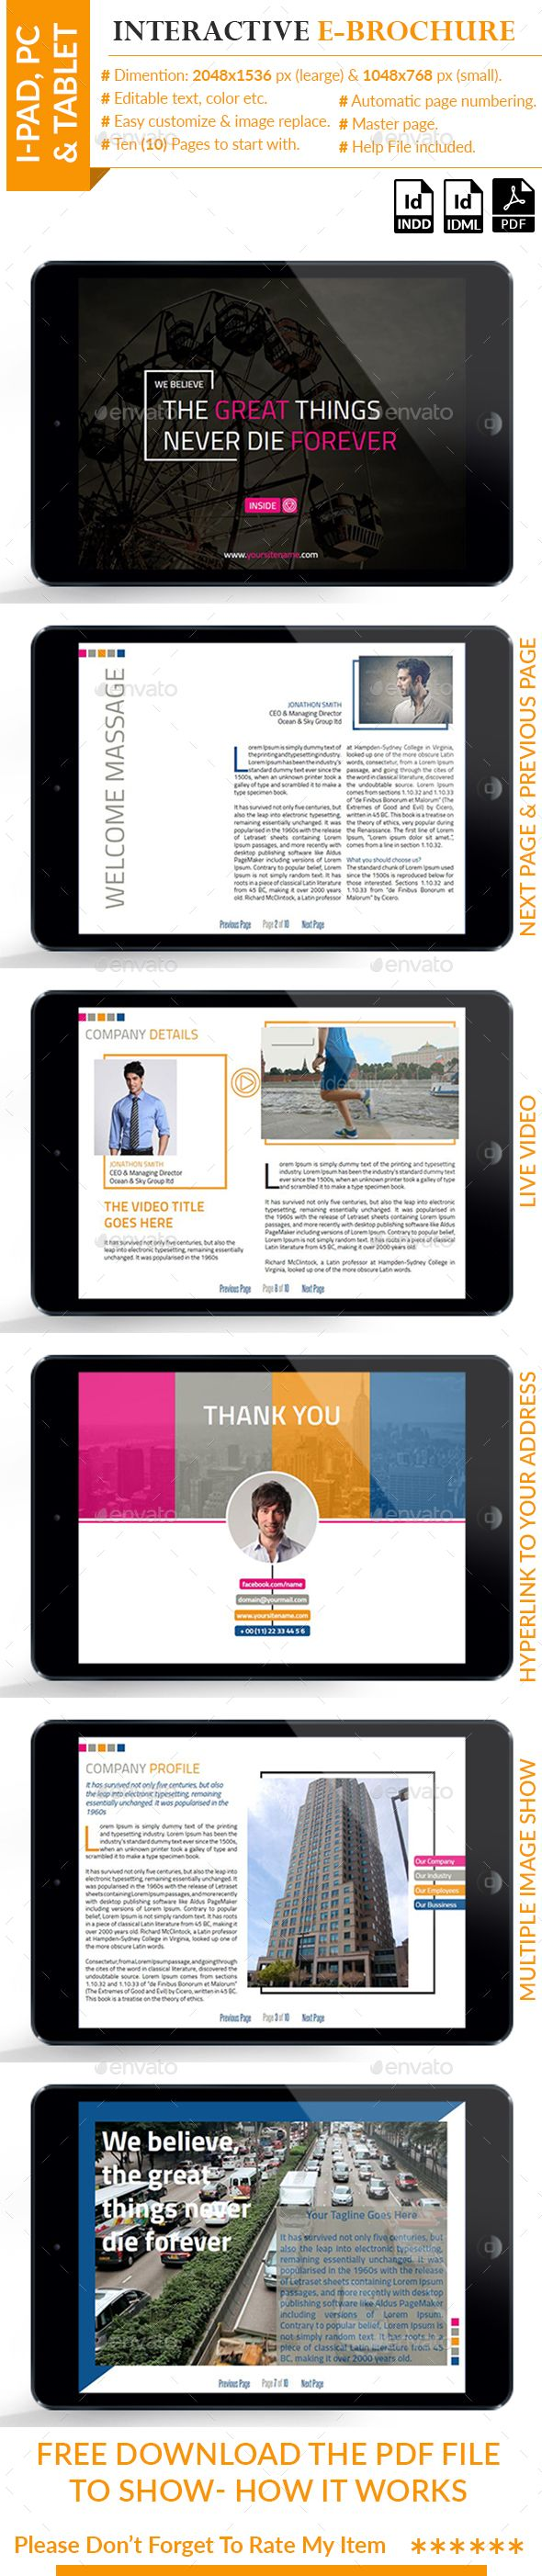 Lovely 1 Page Resume Format Free Download Tiny 100 Free Resume Builder And Download Rectangular 100 Free Resume Builder Online 1099 Contract Template Young 15 Year Old Resume Yellow2 Circle Template Interactive E Brochure | Templates And Book